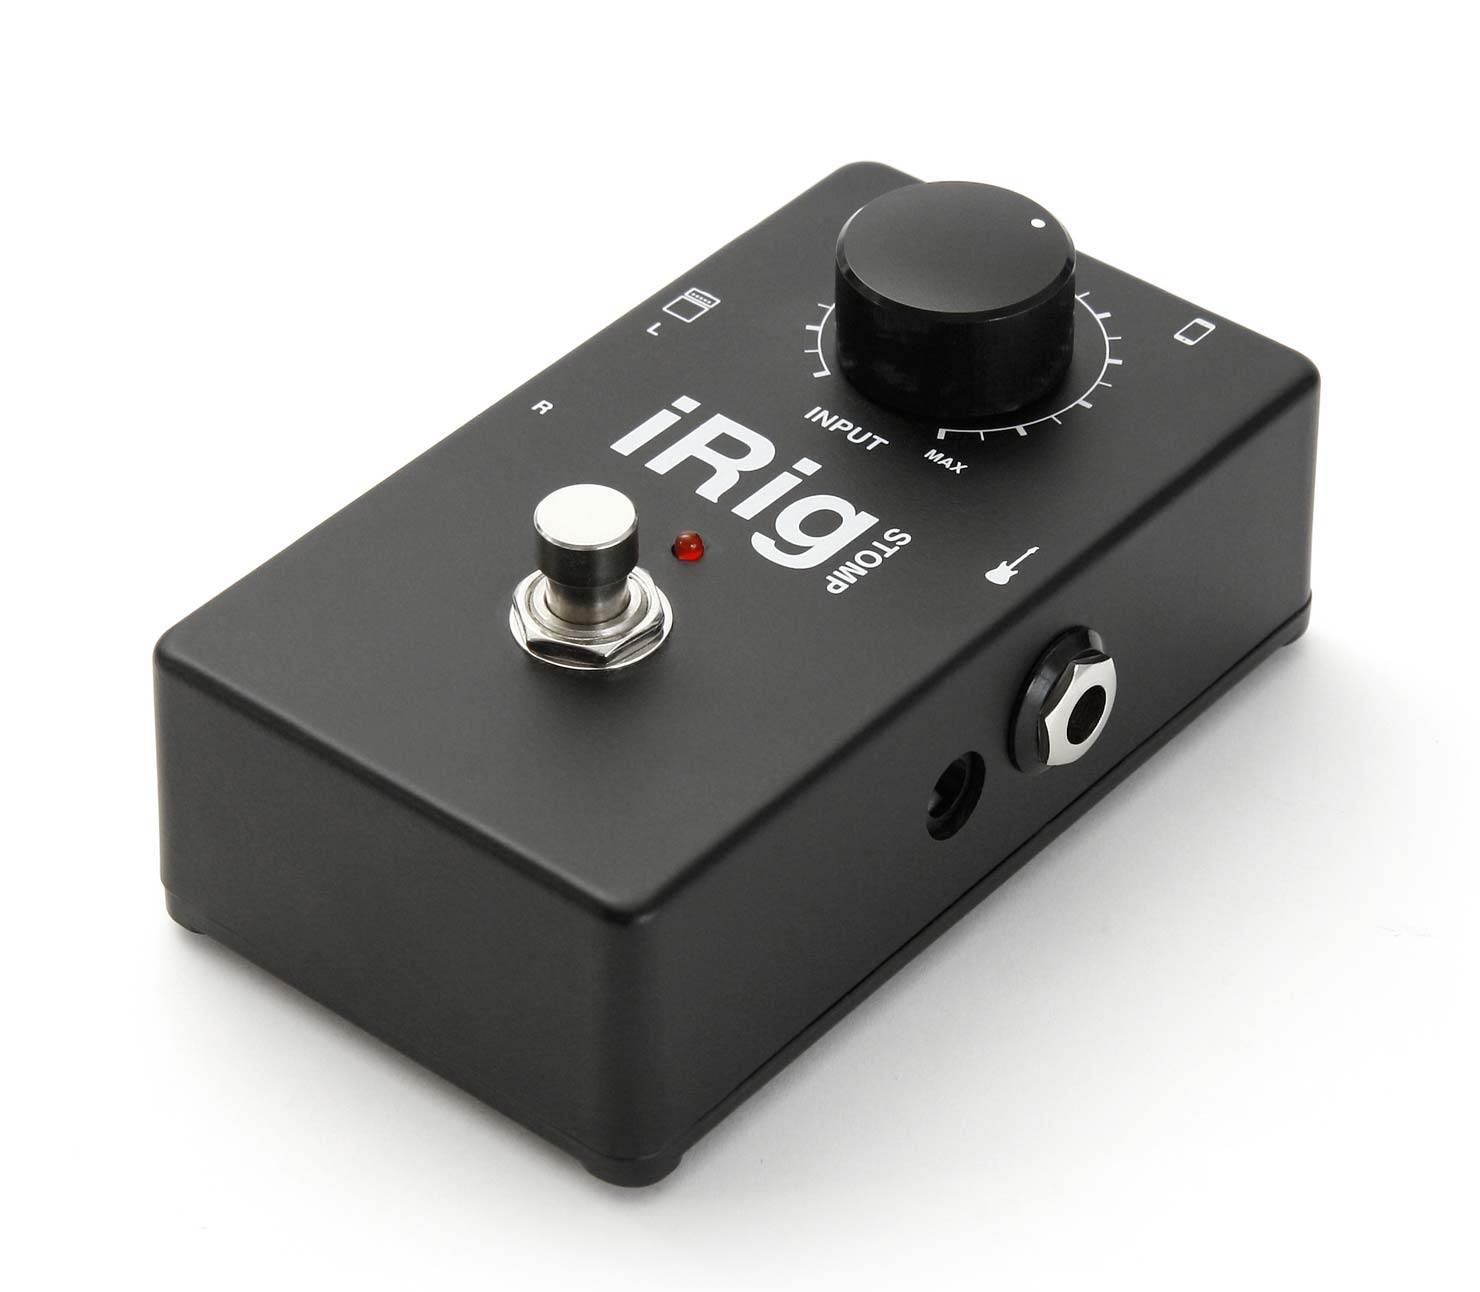 Ik Multimedia Irig Stomp Guitar Input Jack Wiring Mono Is Based On The Wildly Popular Amplitube Interface And Compatible With Any Ios Dare We Say Decent Sounding Amp Instrument